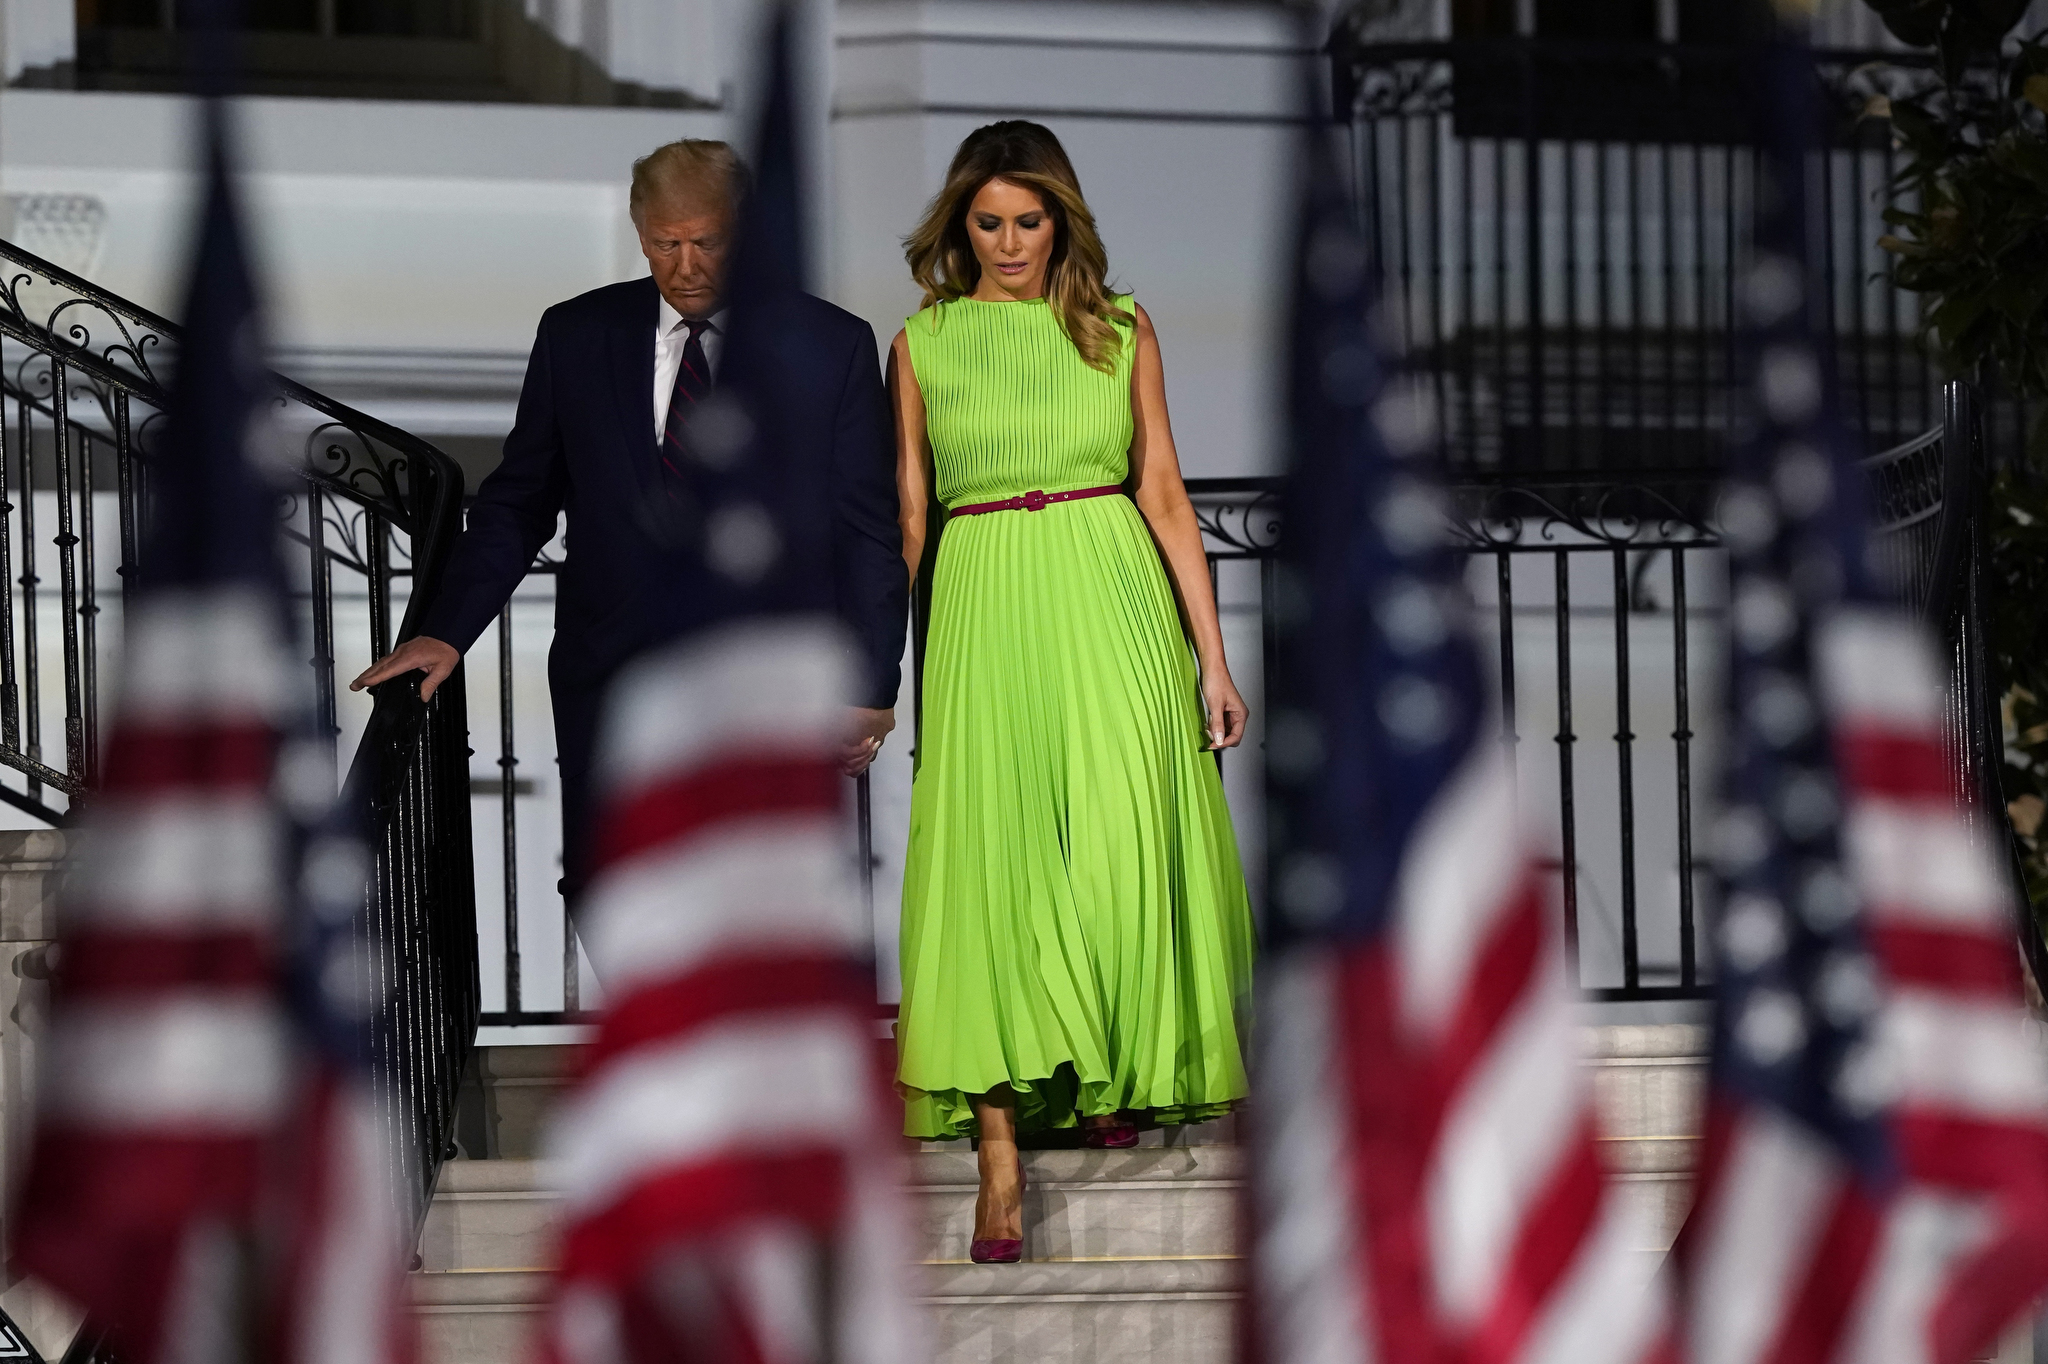 Melania Trump chose a sleeveless micropleated dress from Valentino for the final night at last month's RNC.